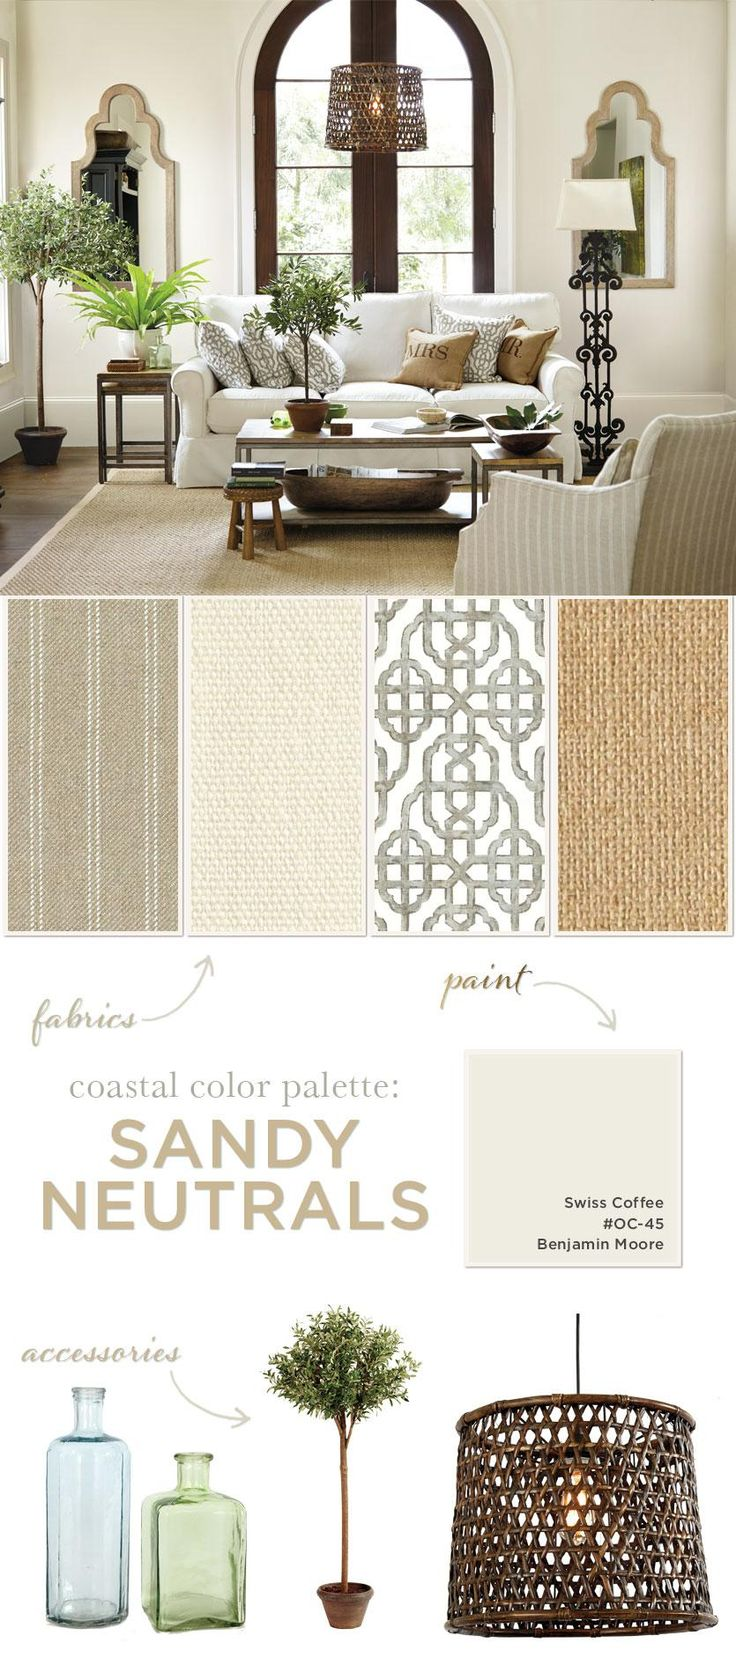 Living room with color palette of tans and whites